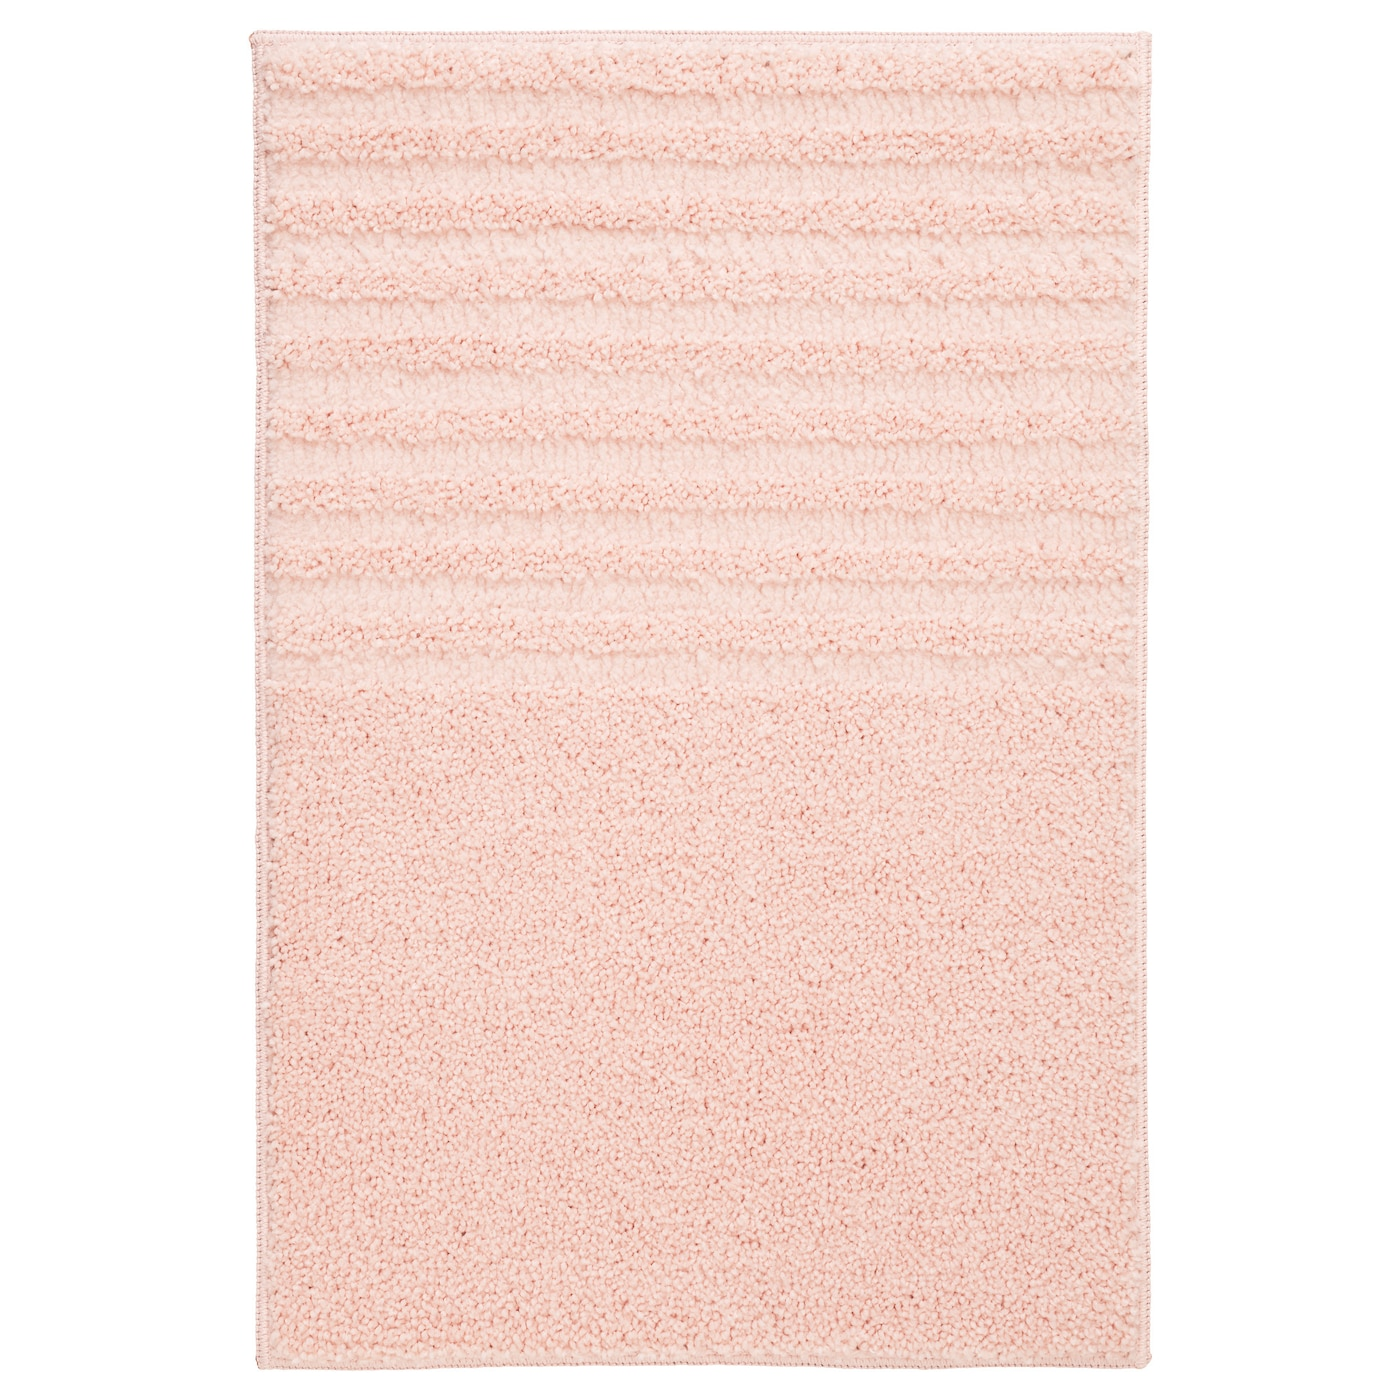 IKEA VOXSJÖN bath mat Ultra soft, absorbent and quick to dry since it's made of microfibre.